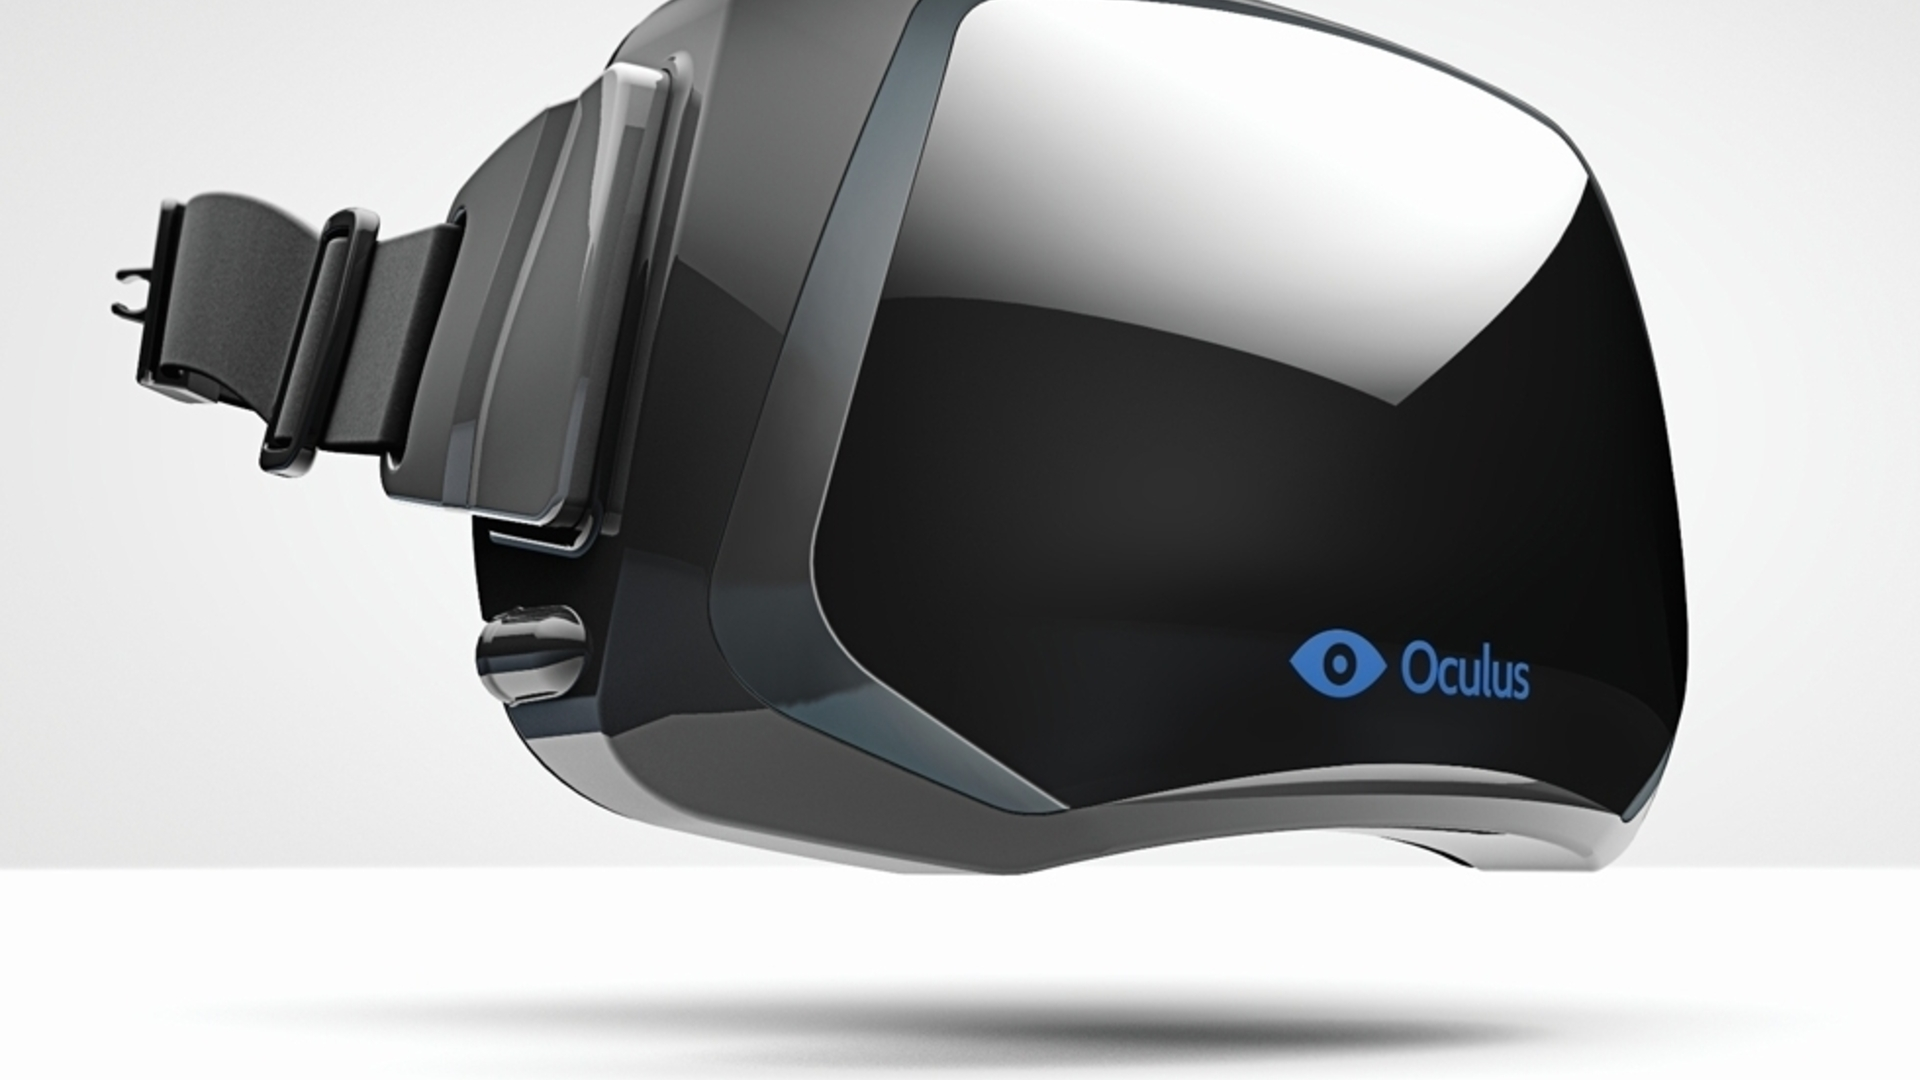 Oculus Rift gets shedload of cash to help polish consumer headset